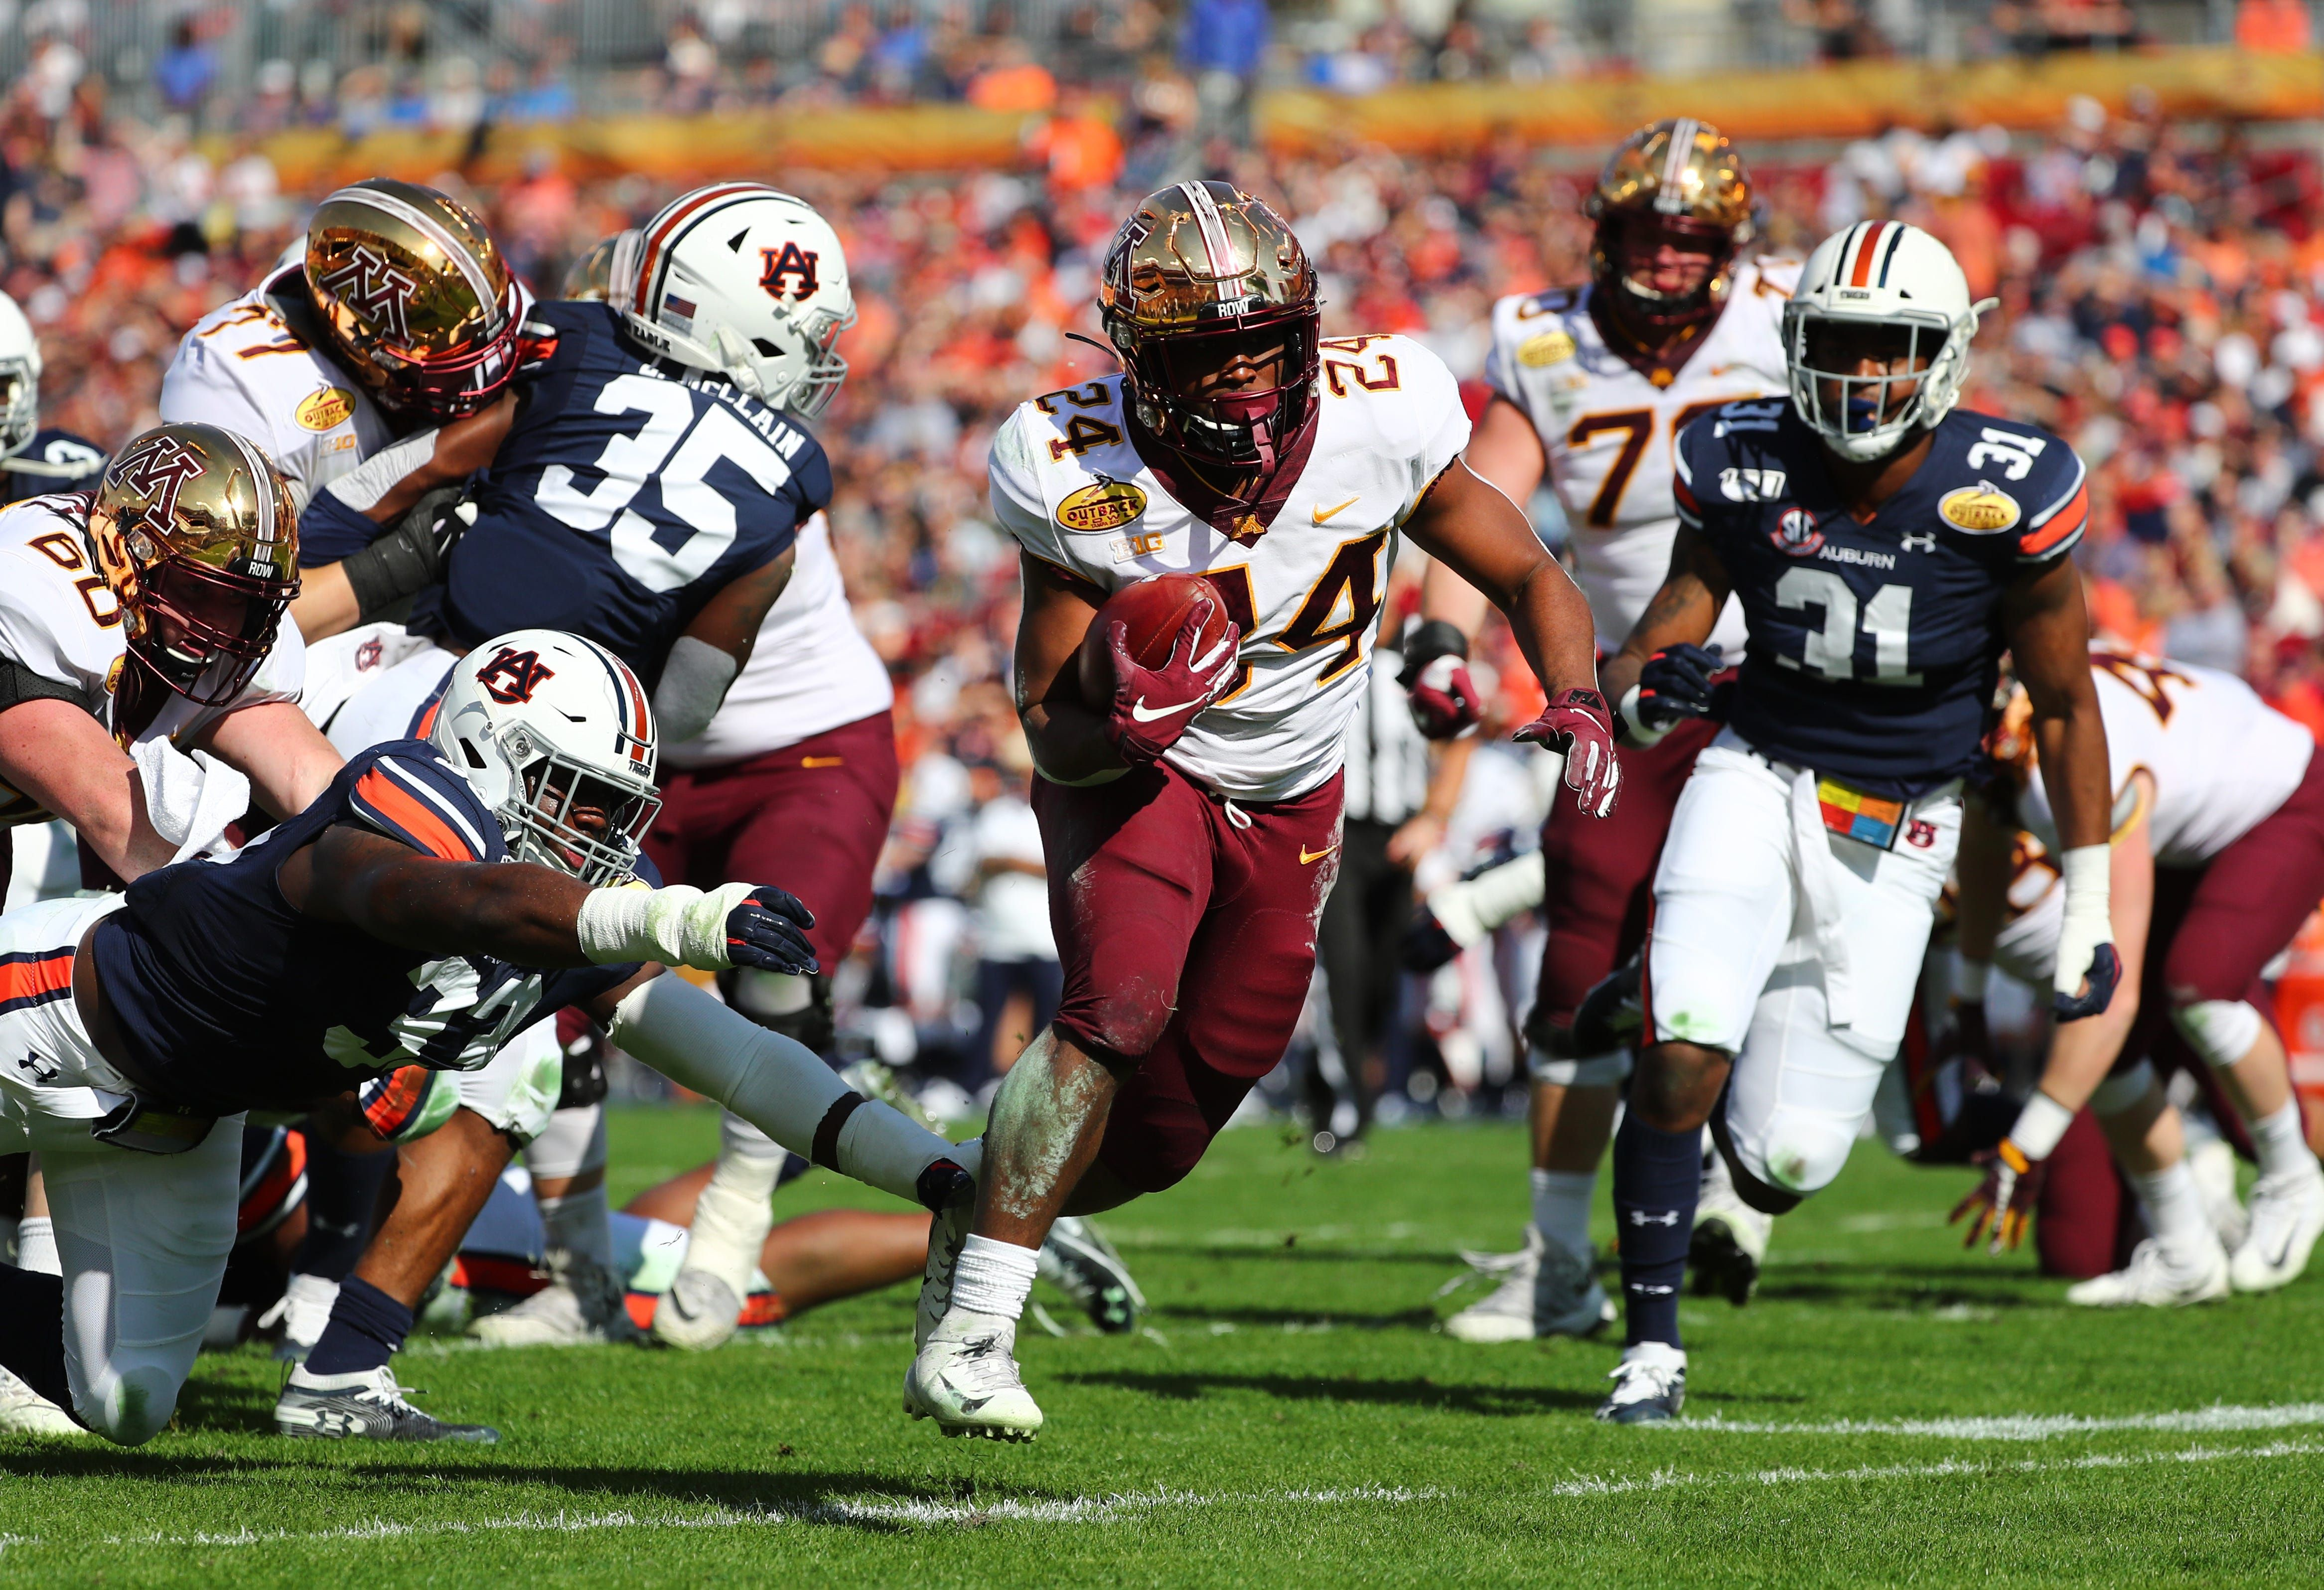 Season grades for all 130 college football teams in the